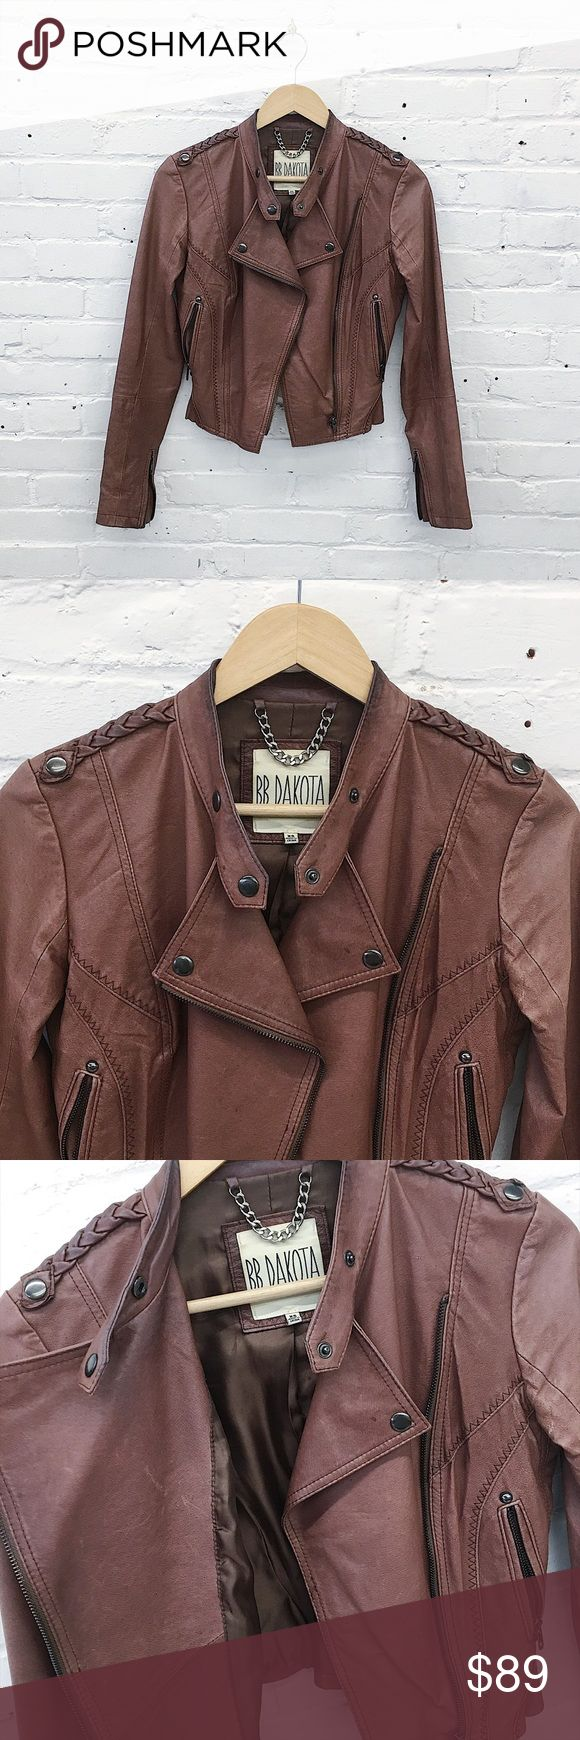 "BB Dakota Leather Jacket XS Totally rad genuine leather moto jacket from BB Dakota! Features fitted body with awesome braided epaulets, cool stitching, and hardware details. In excellent used condition with slight wear and patina to the leather. The leather is a warm reddish brown and super soft!  🔹Size XS - fits true 🔹Signs of wear (pictured)  🔹18"" length   🔹34"" bust  👉🏼 Want to negotiate? Please use the offer button. 👉🏼 Bundle with one more item for an instant 20% off! 👉🏼 Sorry…"